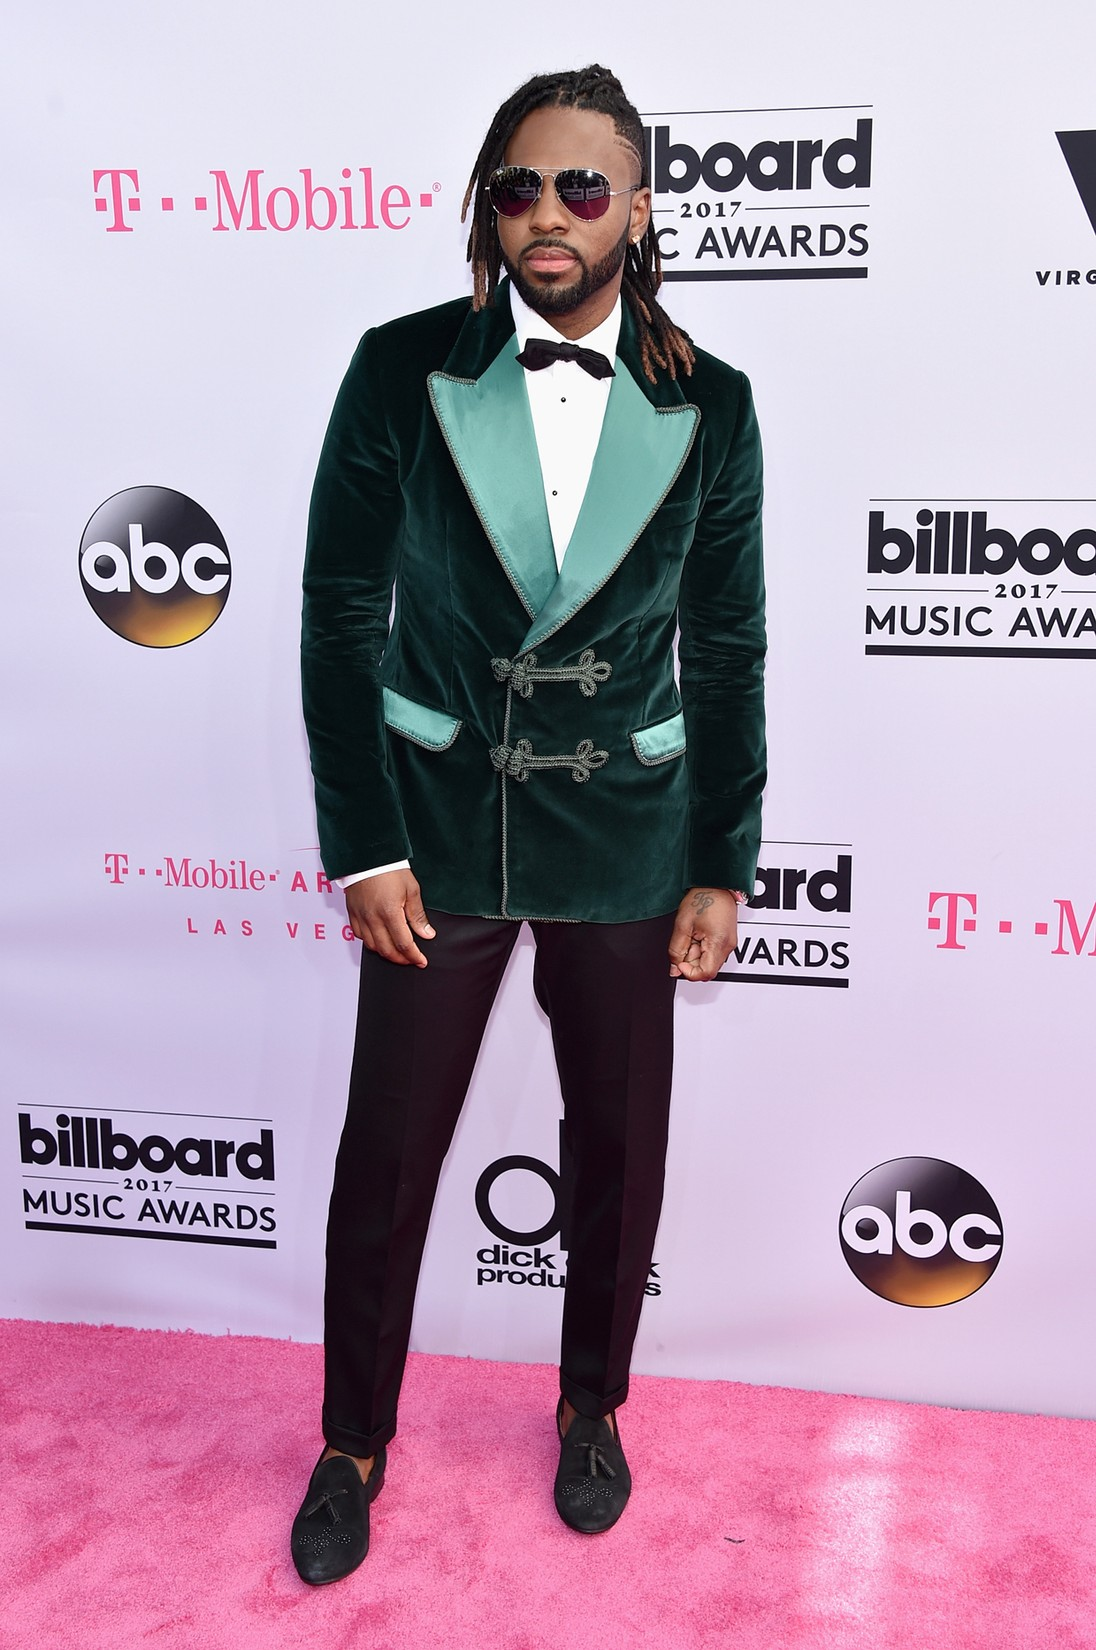 Jason Derulo attends the 2017 Billboard Music Awards at T-Mobile Arena on May 21, 2017 in Las Vegas.